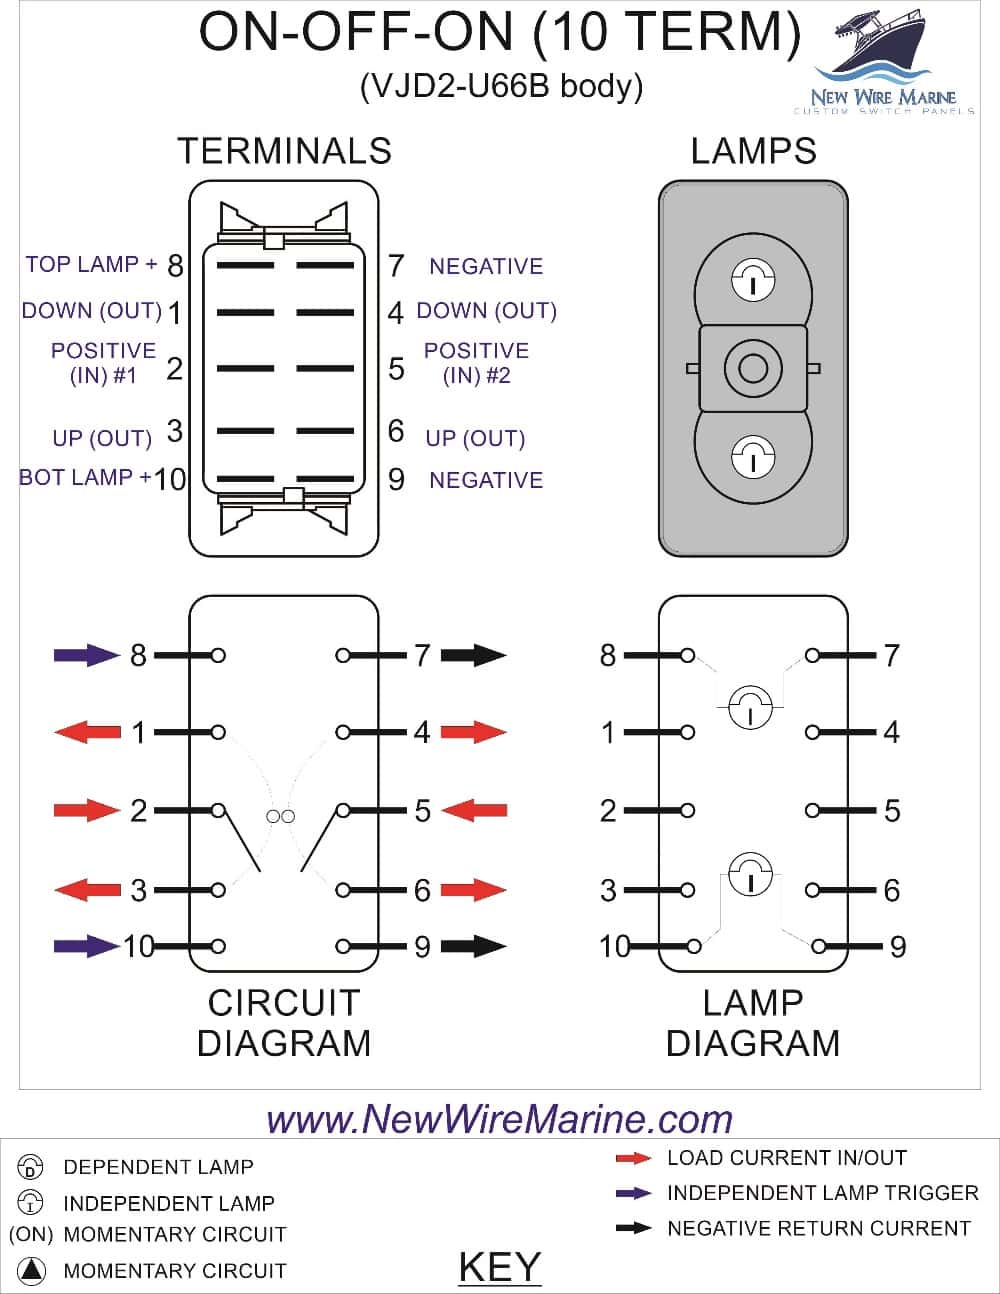 doc] ➤ diagram dpdt toggle switch wiring diagram variations ebook6 pole momentary rocker switch wiring diagram circuit